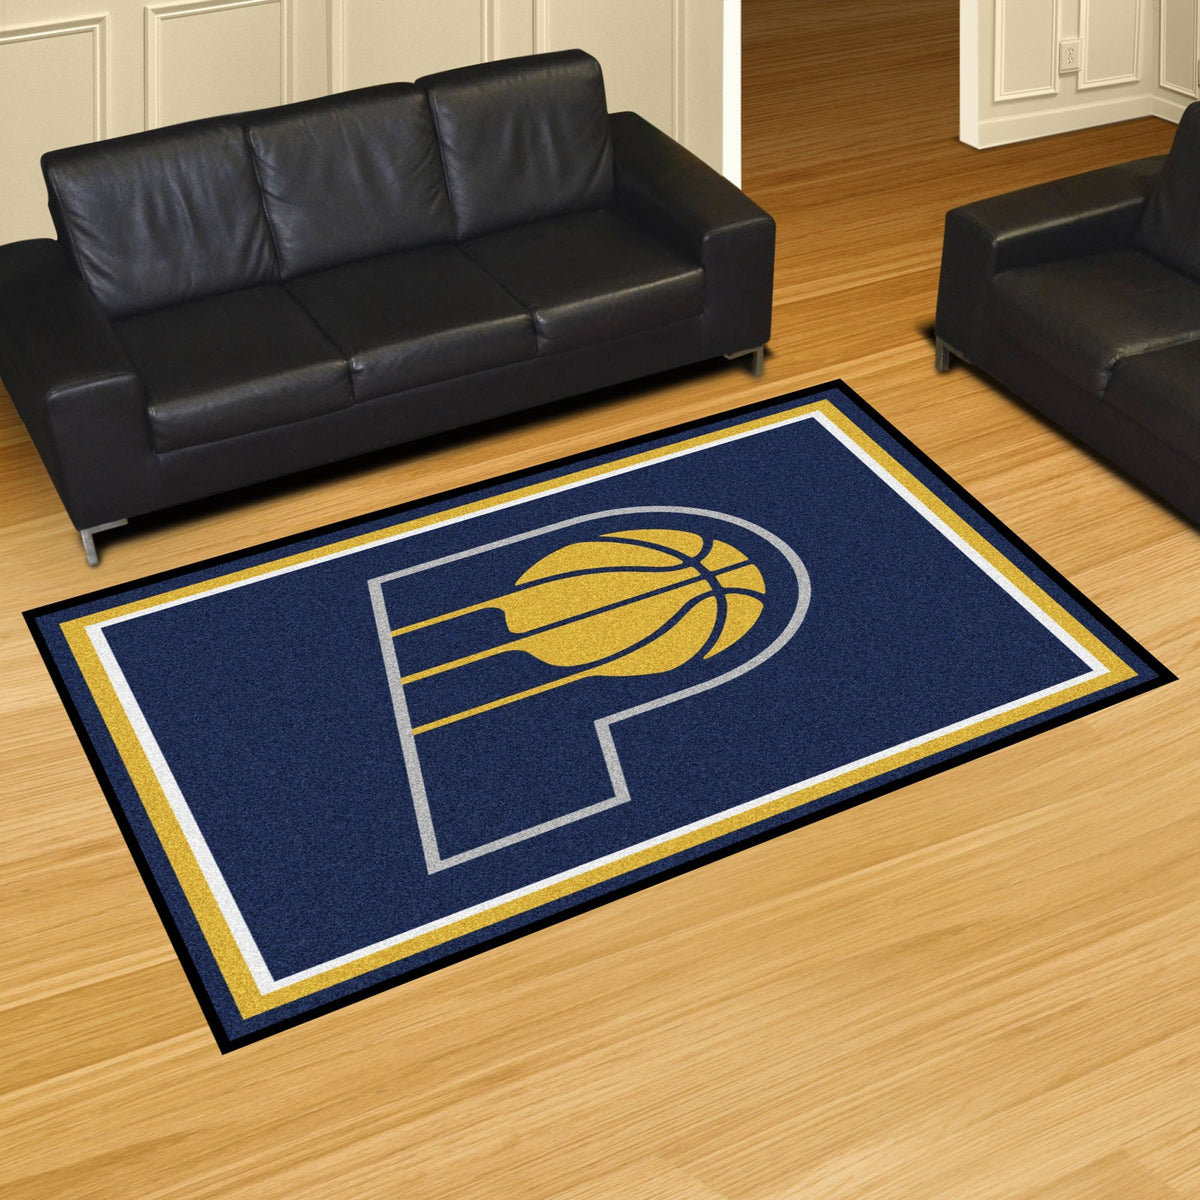 NBA - 8' x 10' Rug NBA Mats, Plush Rugs, 8x10 Rug, NBA, Home Fan Mats Indiana Pacers